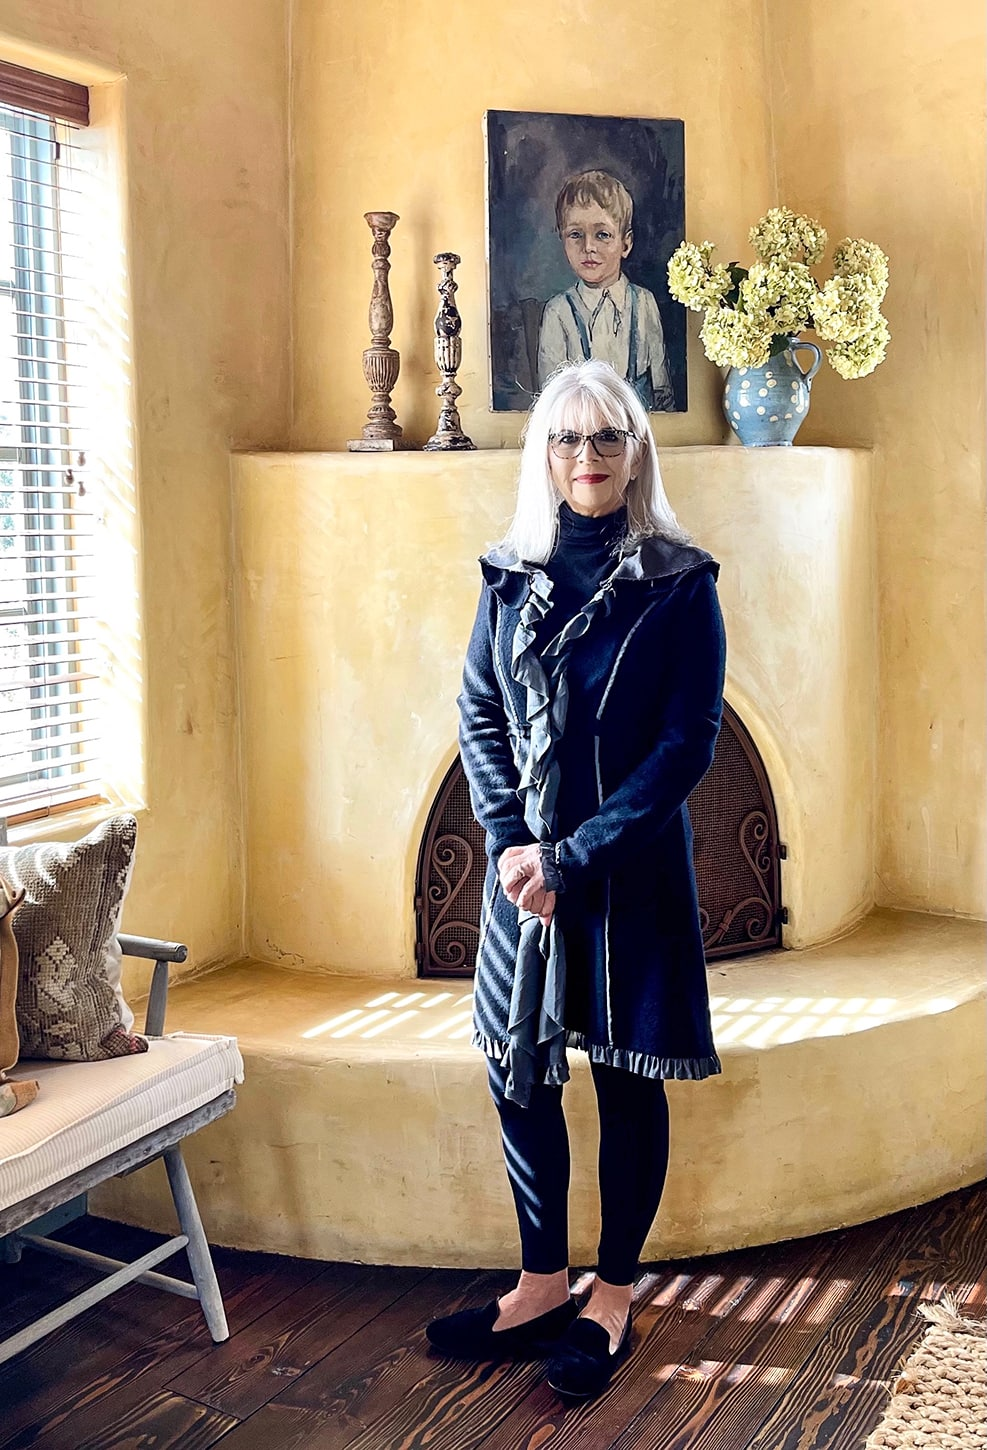 over 50 style blogger cindy hattersley